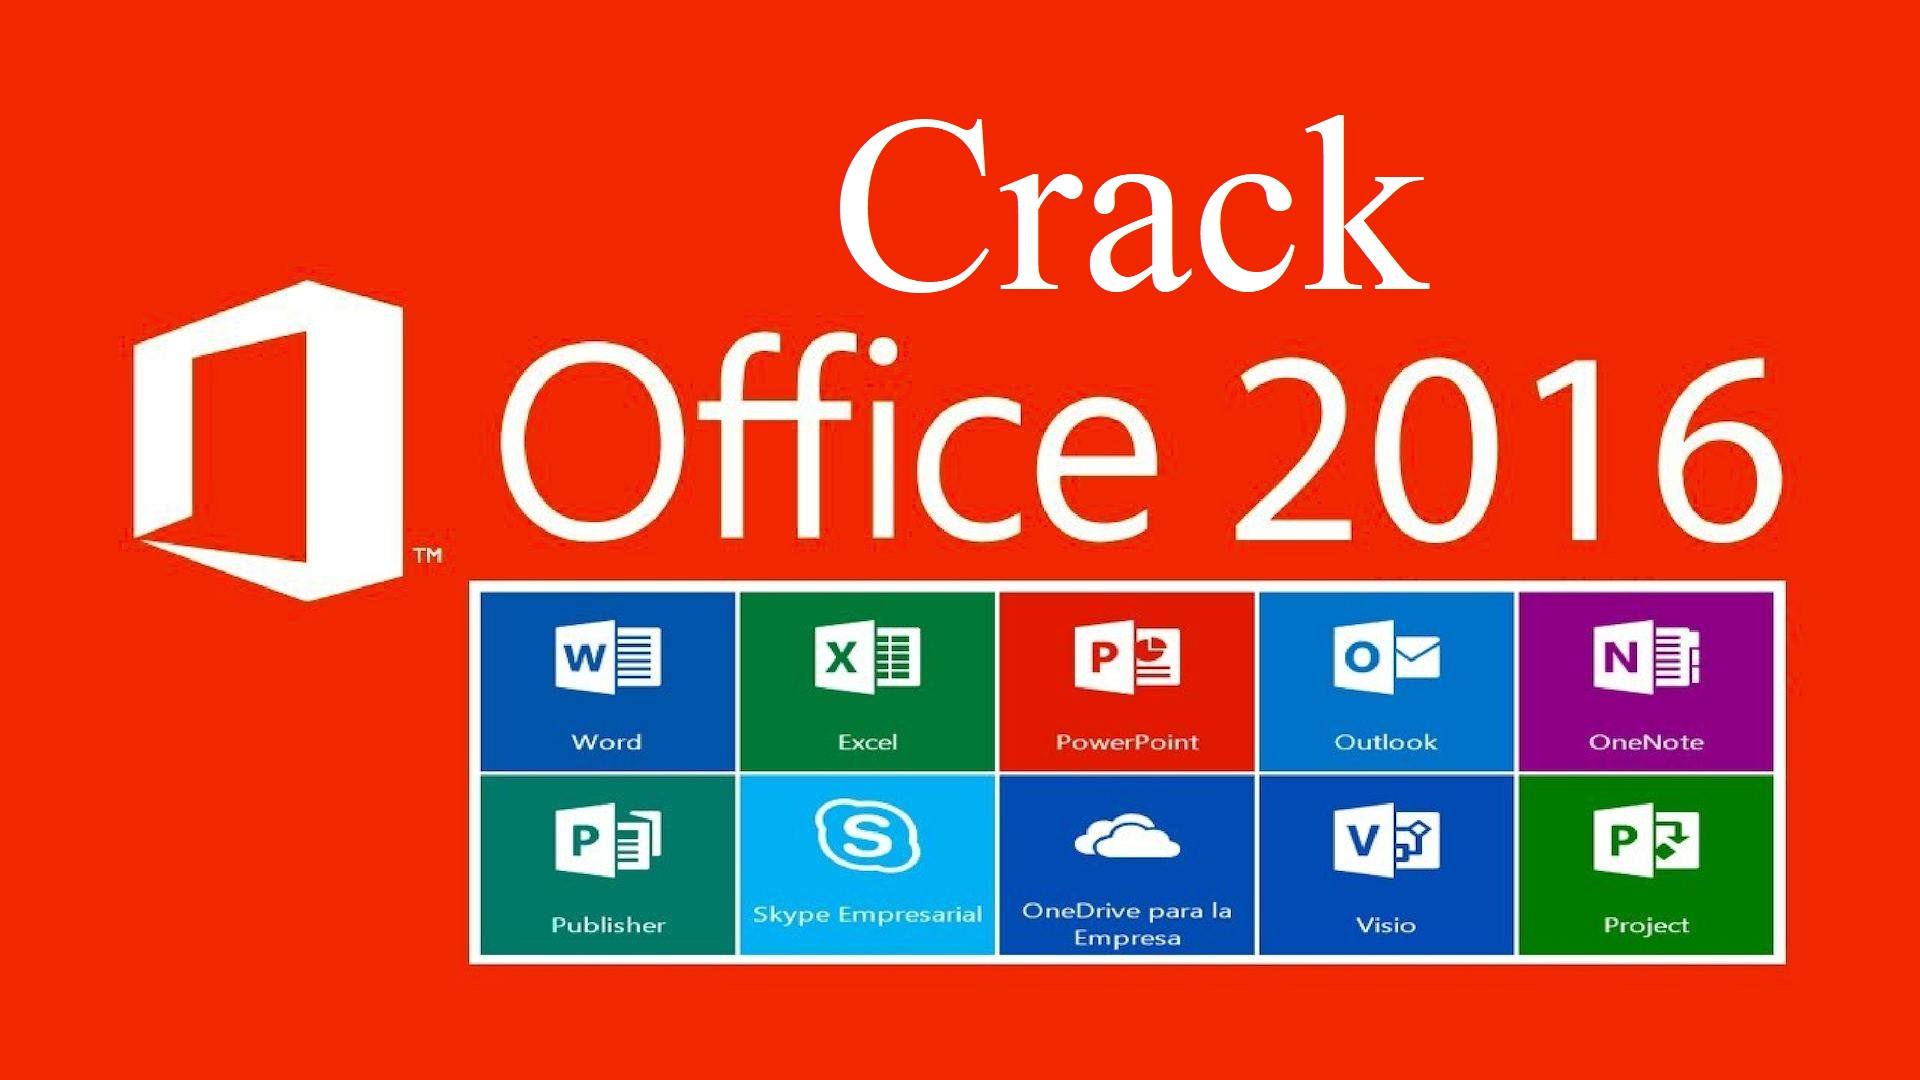 Crack Office 2016